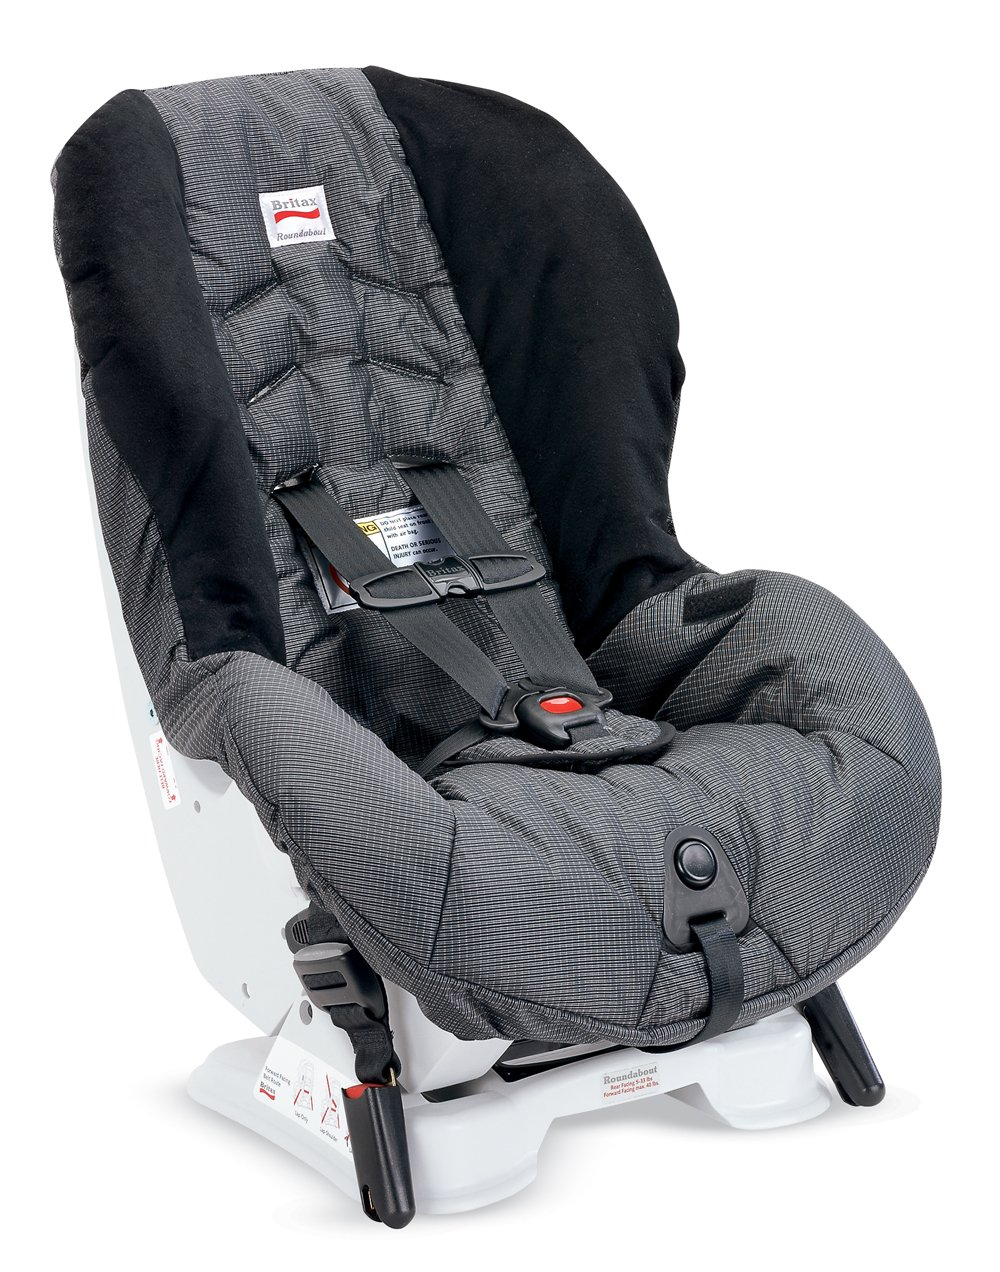 Britax Roundabout 40 Convertible Car Seat Onyx Prior